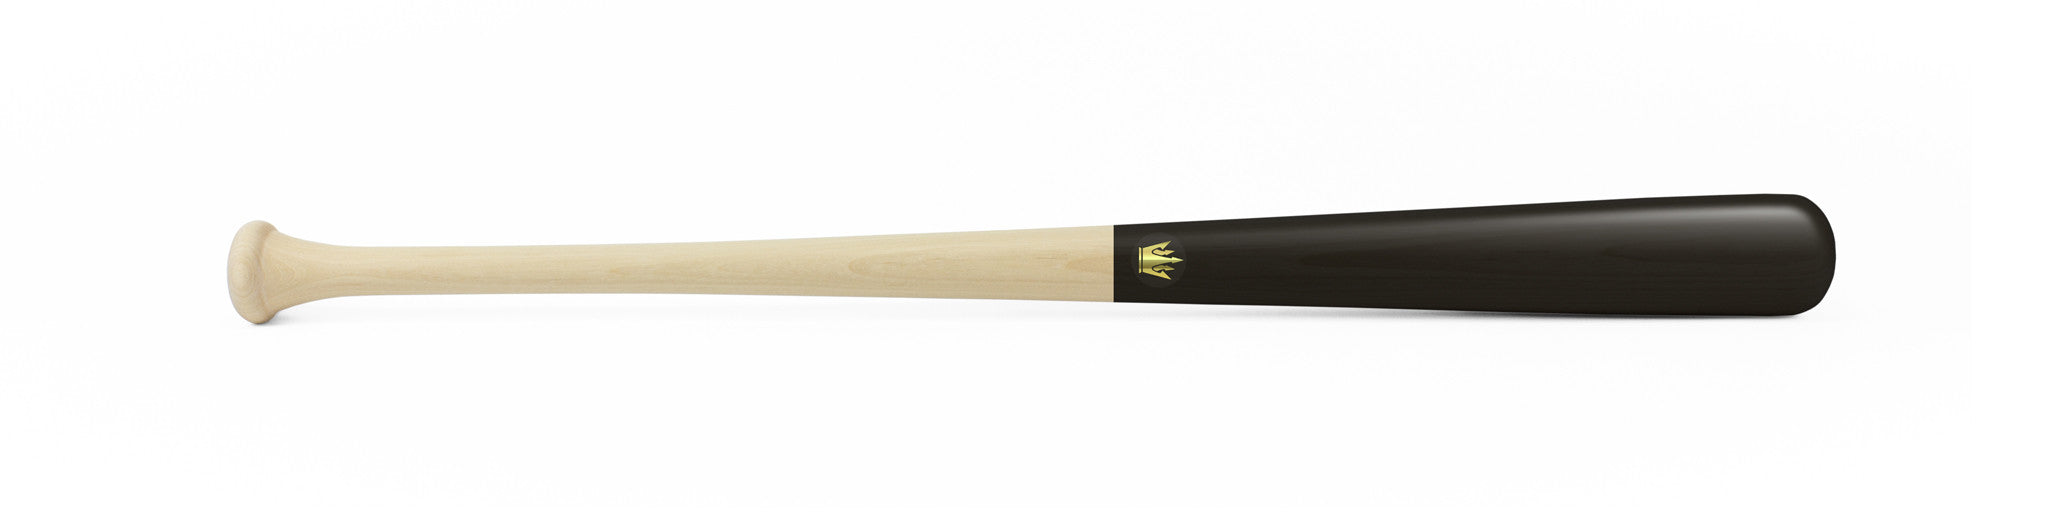 Wood bat - Maple model Y110 Black Standard - 11